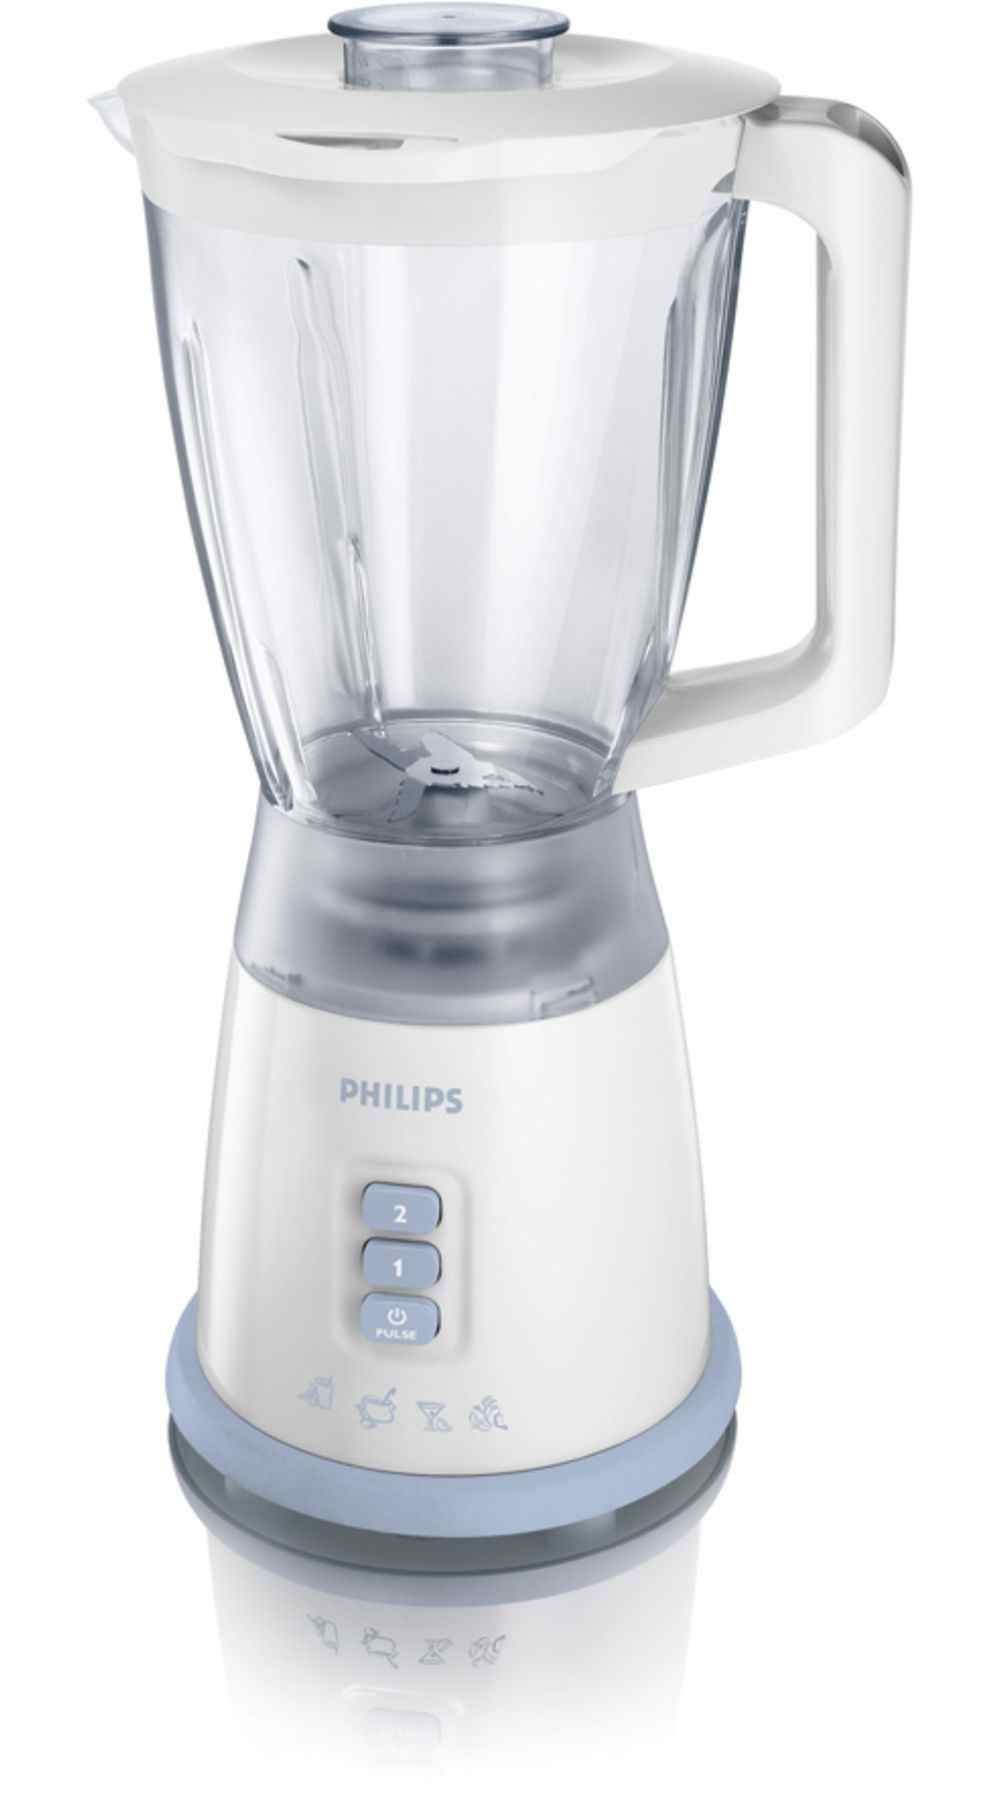 Philips Hr2020 70